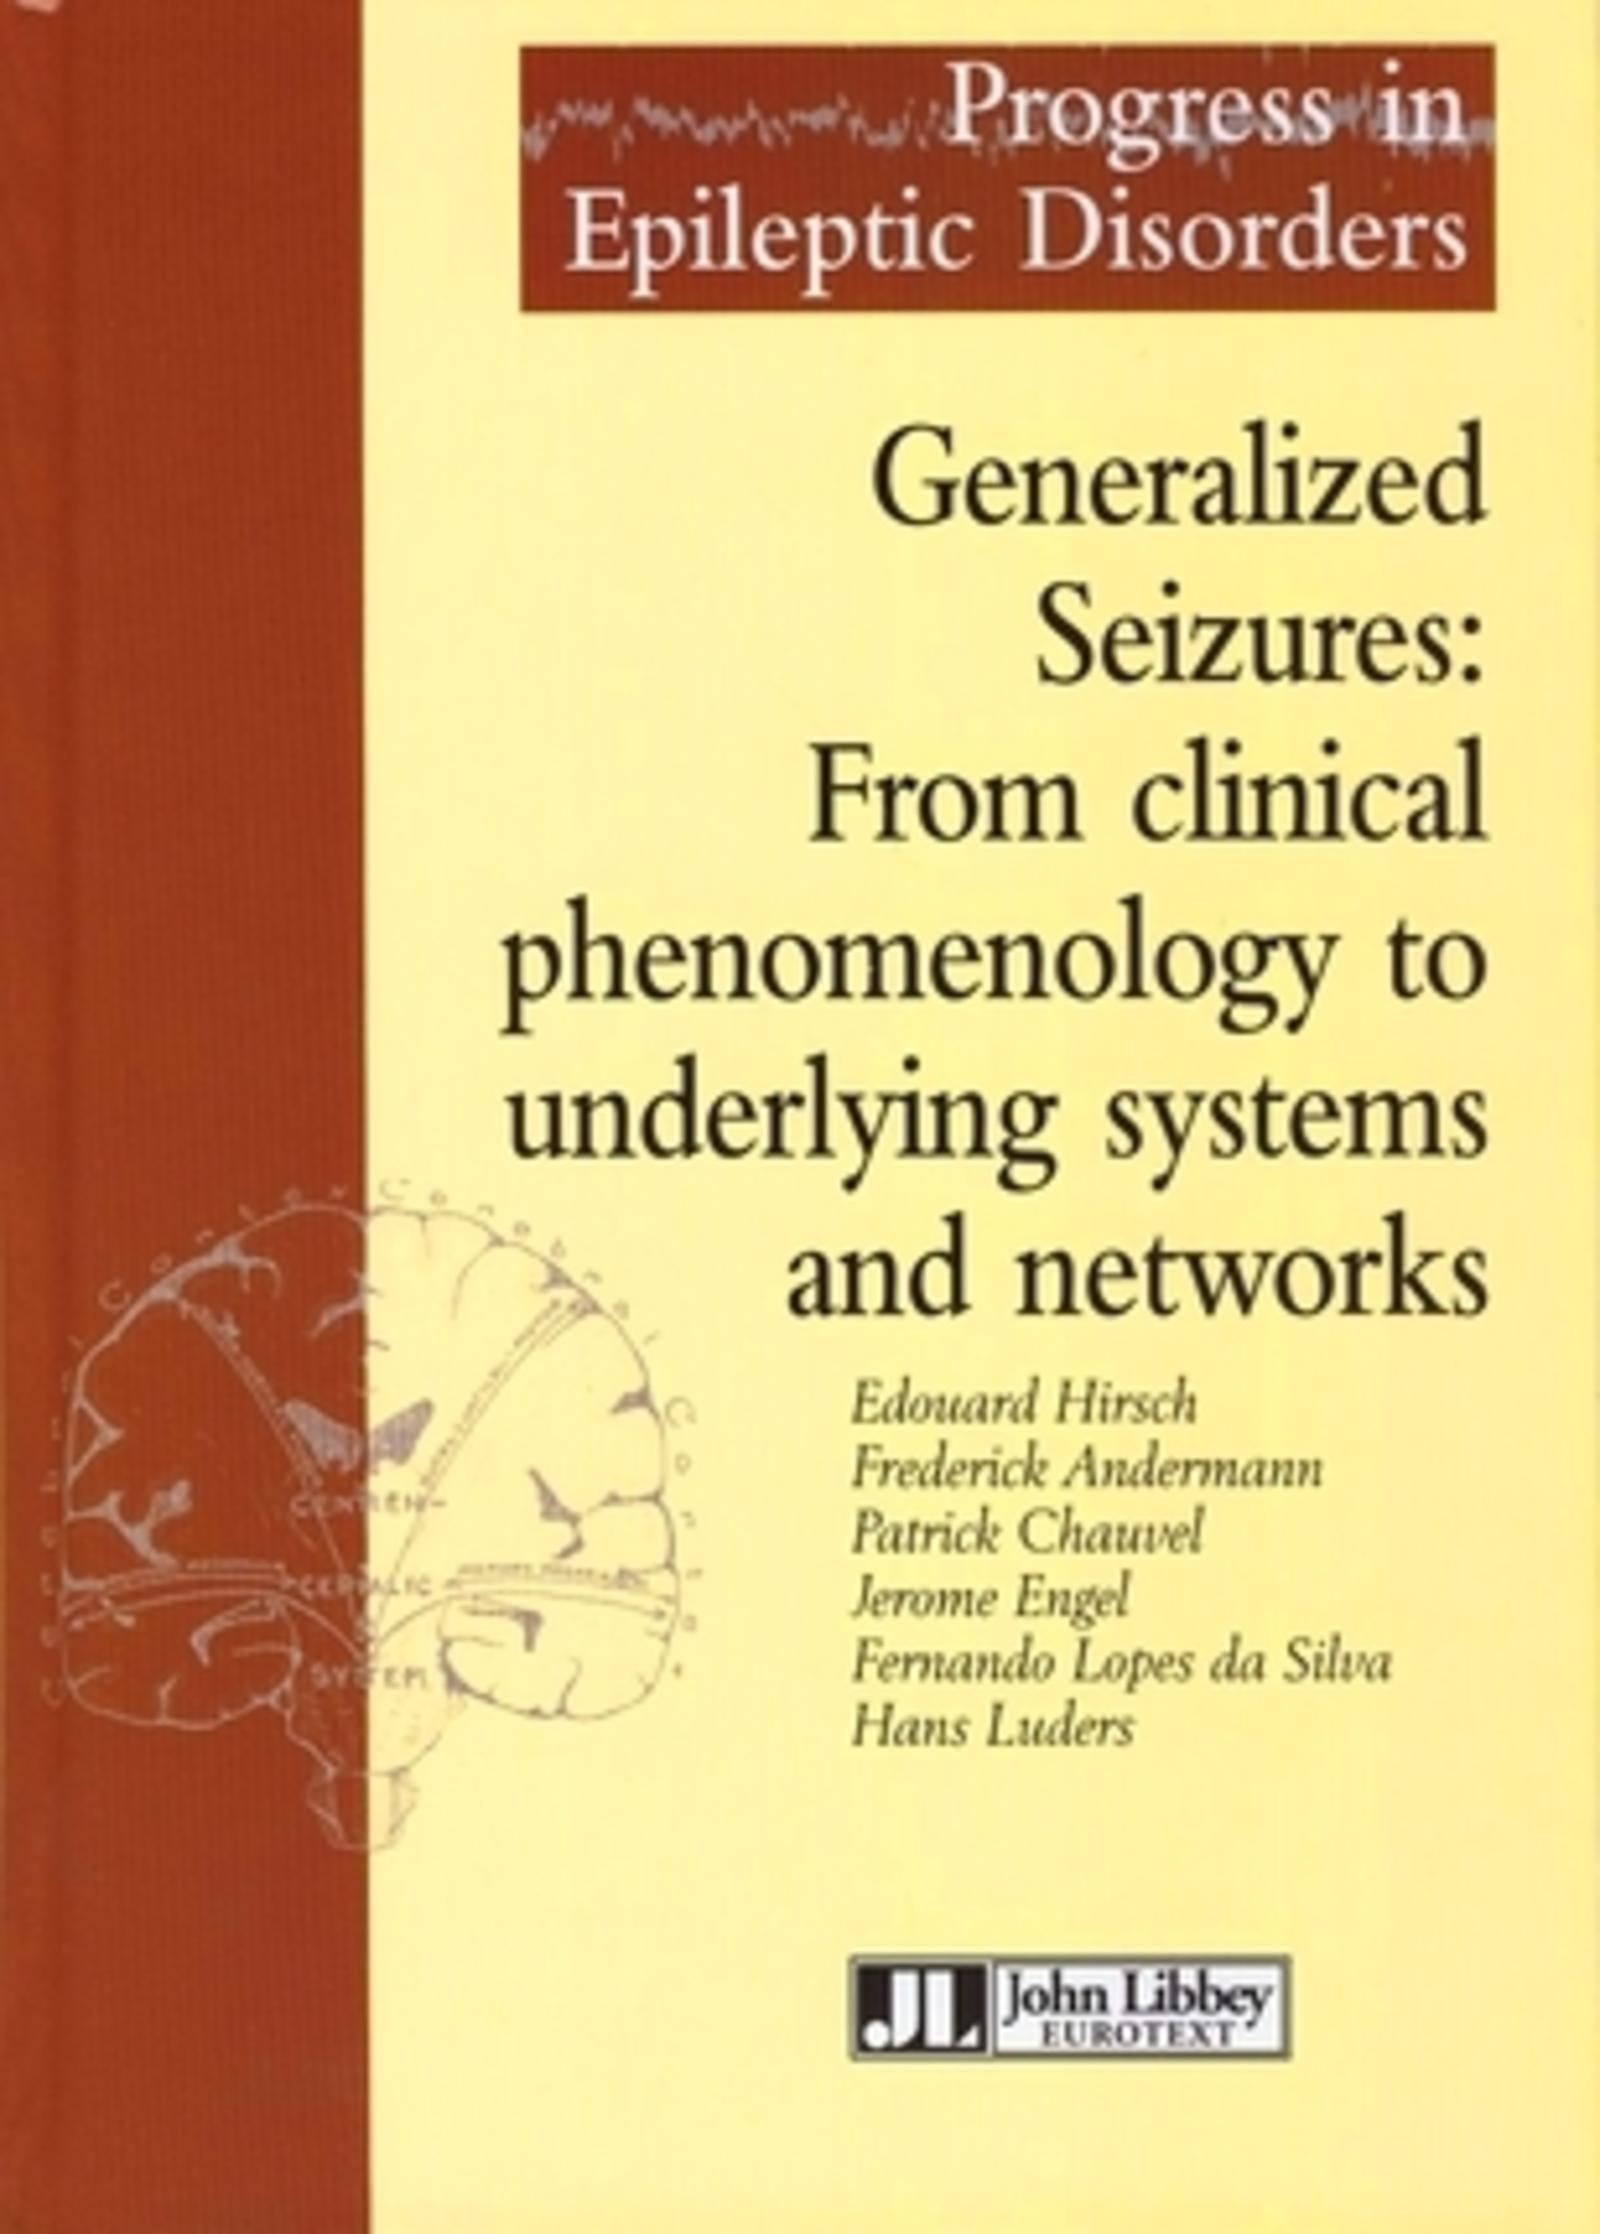 GENERALIZED SEIZURES : FROM CLINICAL PHENOMENOLOGY TO UNDERLYING SYSTEMS AND NETWORKS